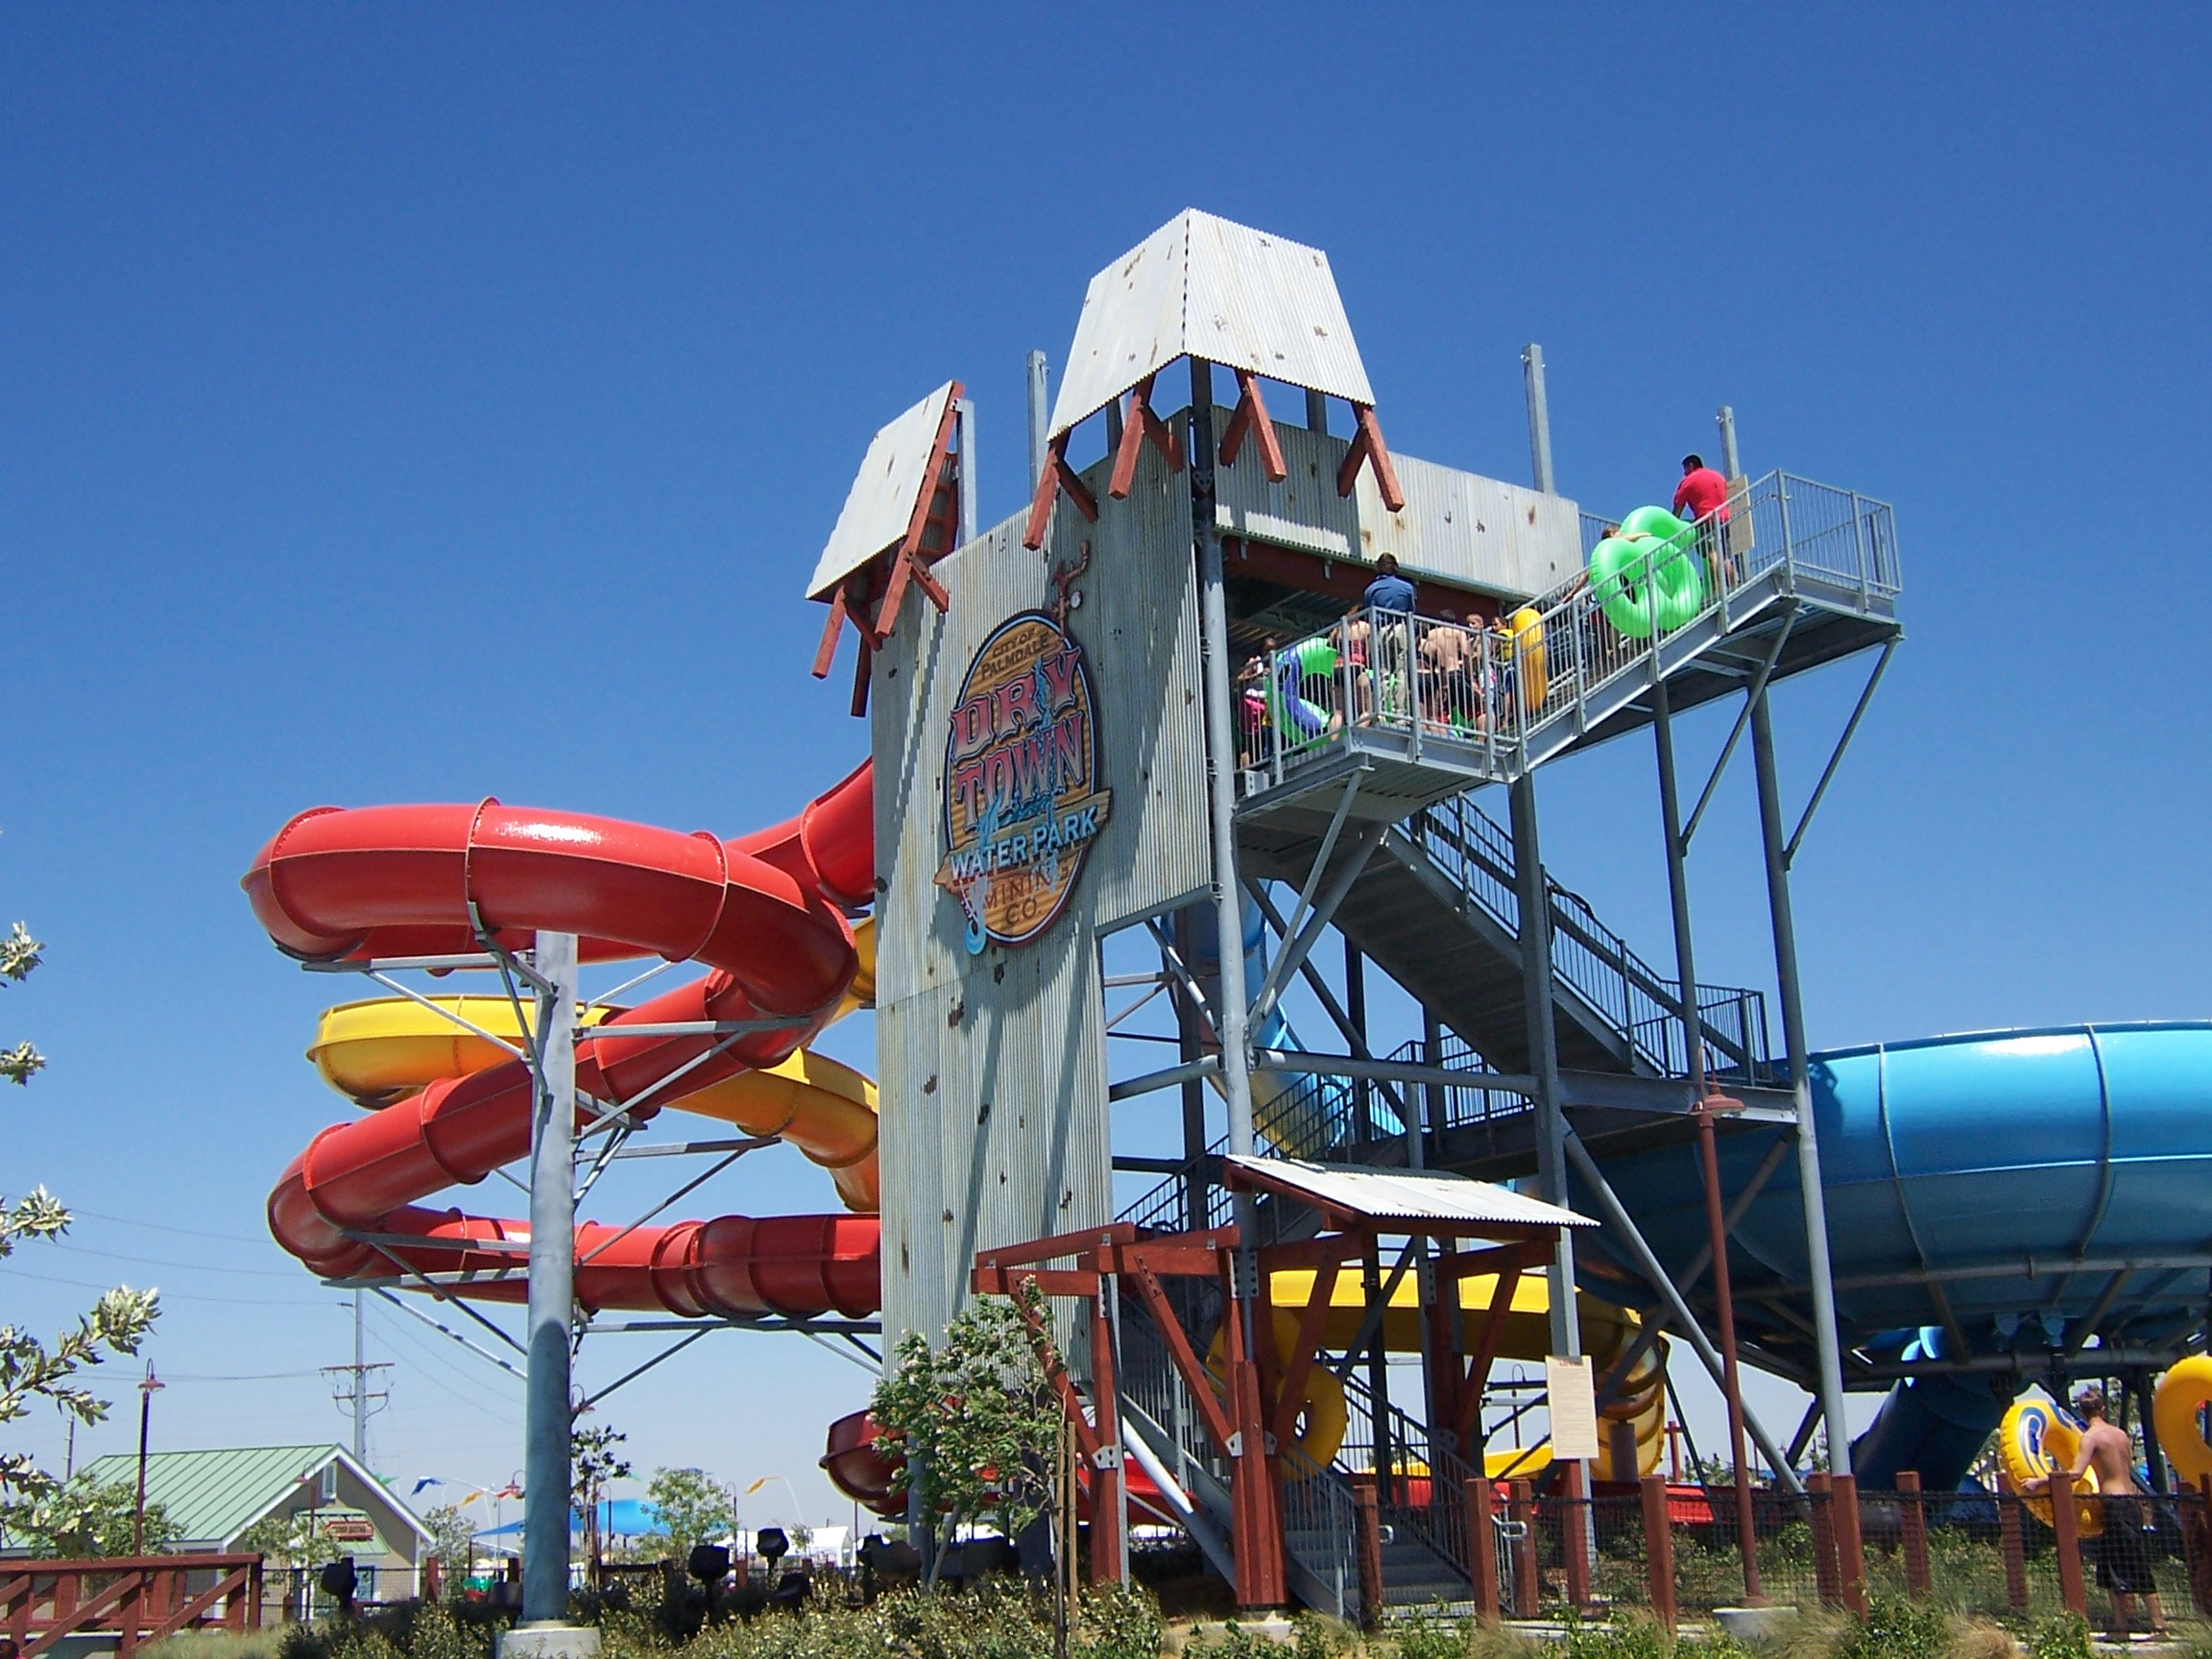 DryTown Water Park, Palmdale